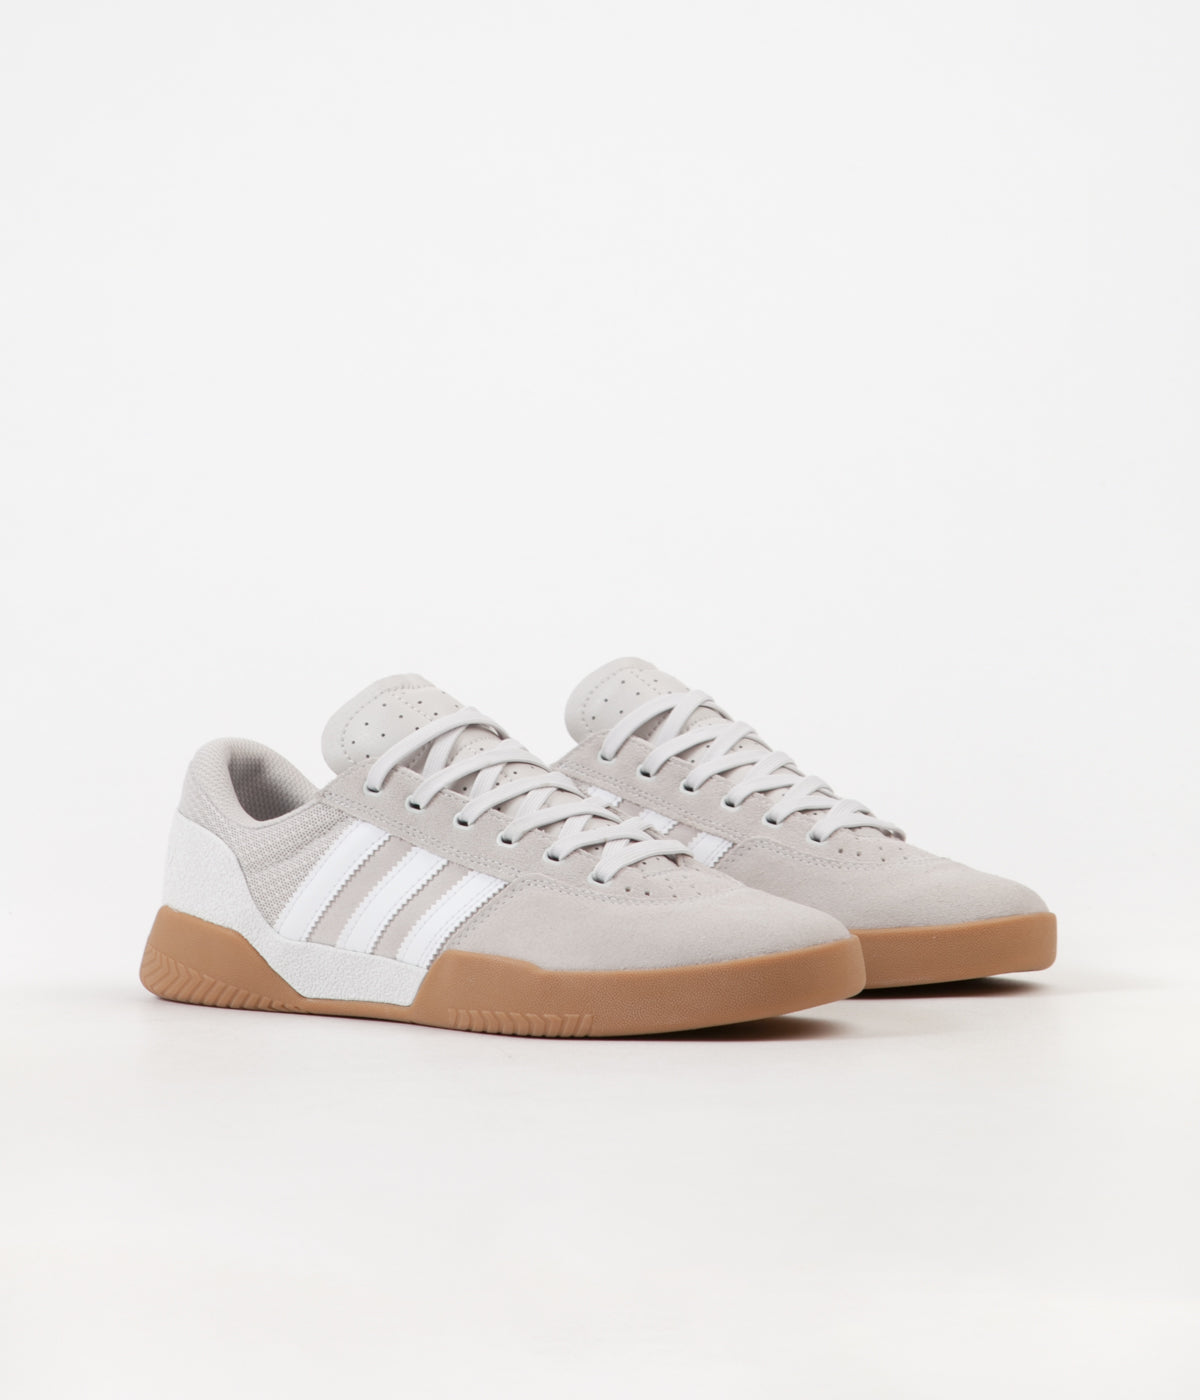 Adidas City Cup Shoes - Crystal White / Chalk Pearl / Gum4